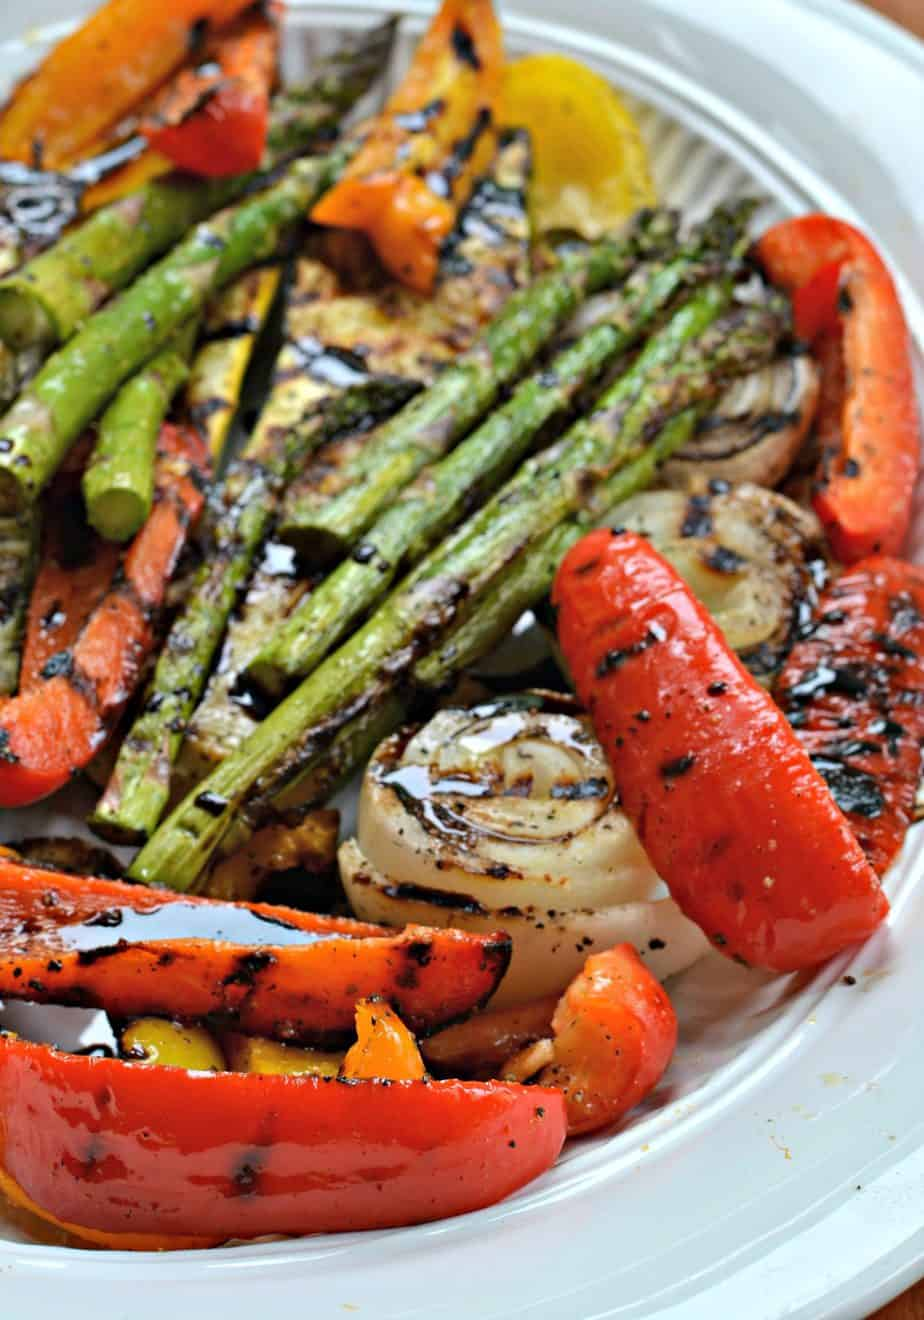 A fun and easy grilled vegetable recipe with a simple balsamic reduction sauce.